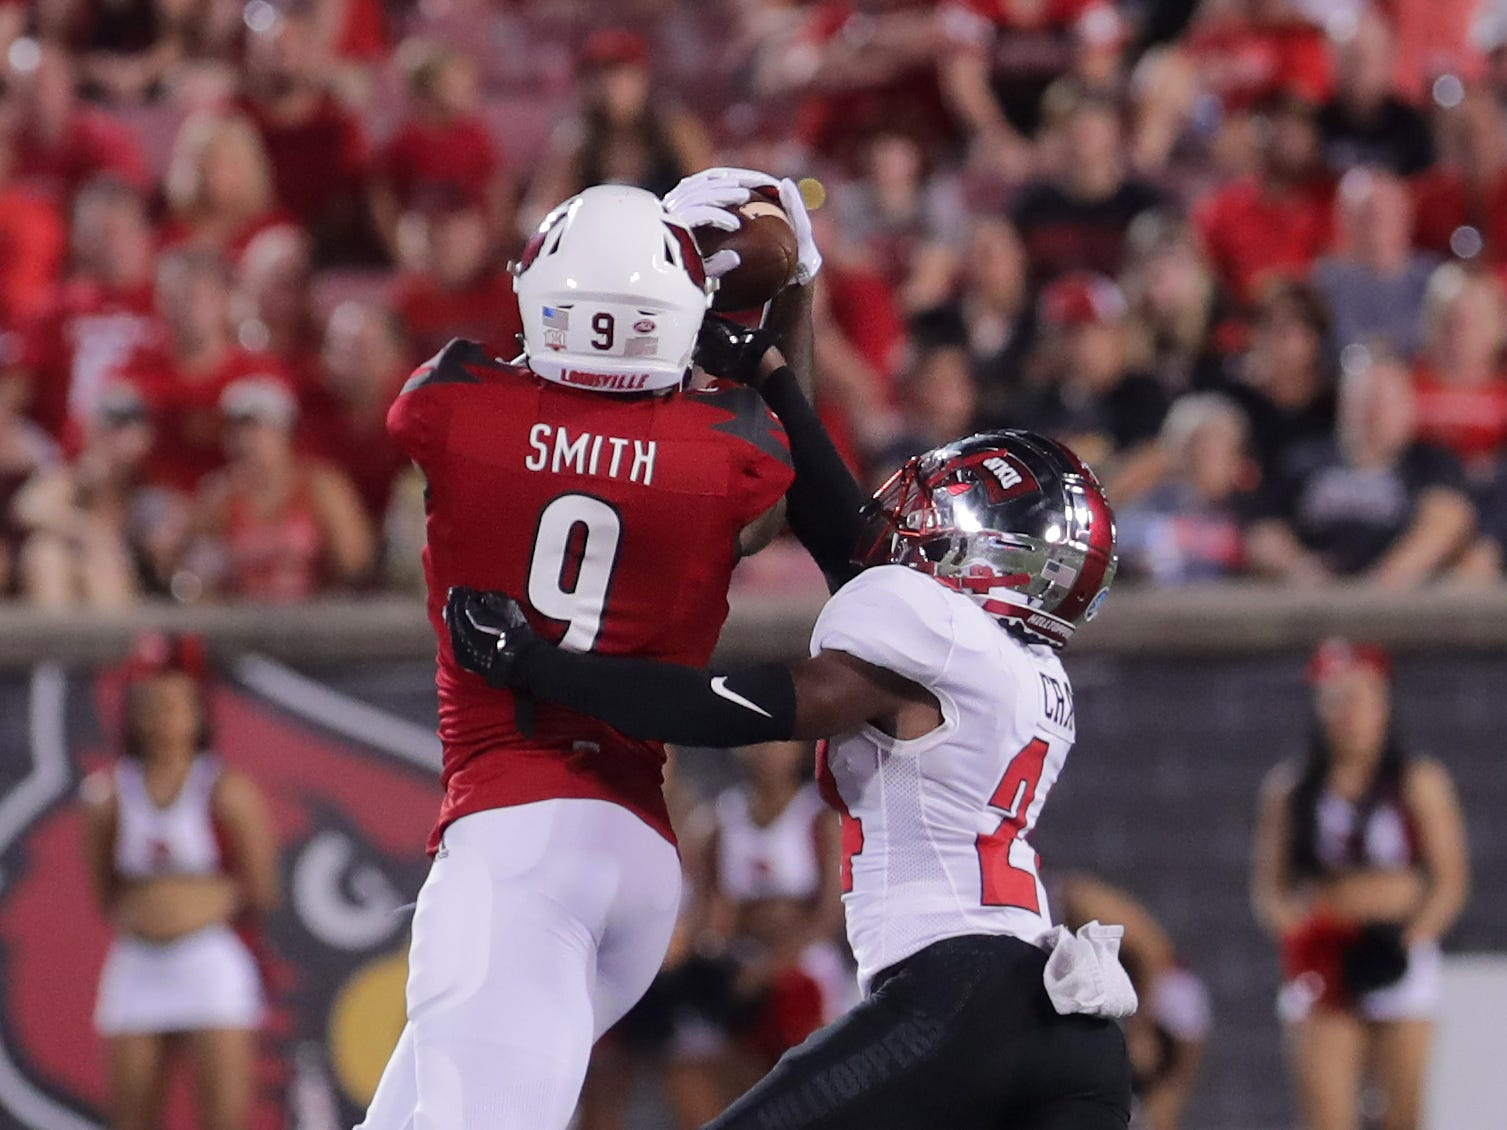 Louisville's Jaylen Smith grabs the catch for a first down.  